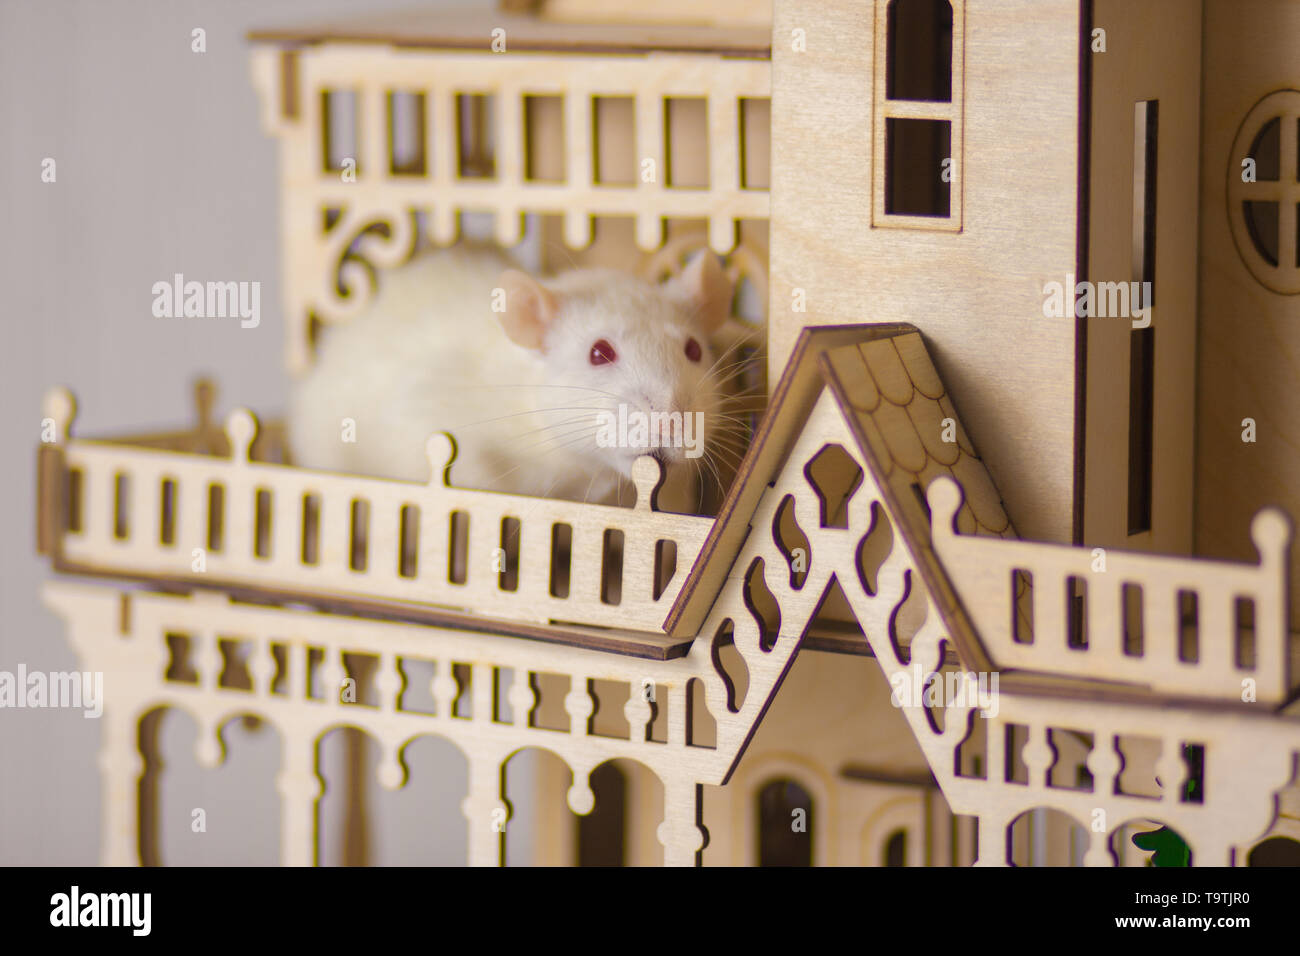 The concept of a fairy tale. A rat The concept of a fairy tale. A rat in the house. White mouse in a wooden Palace. - Stock Image